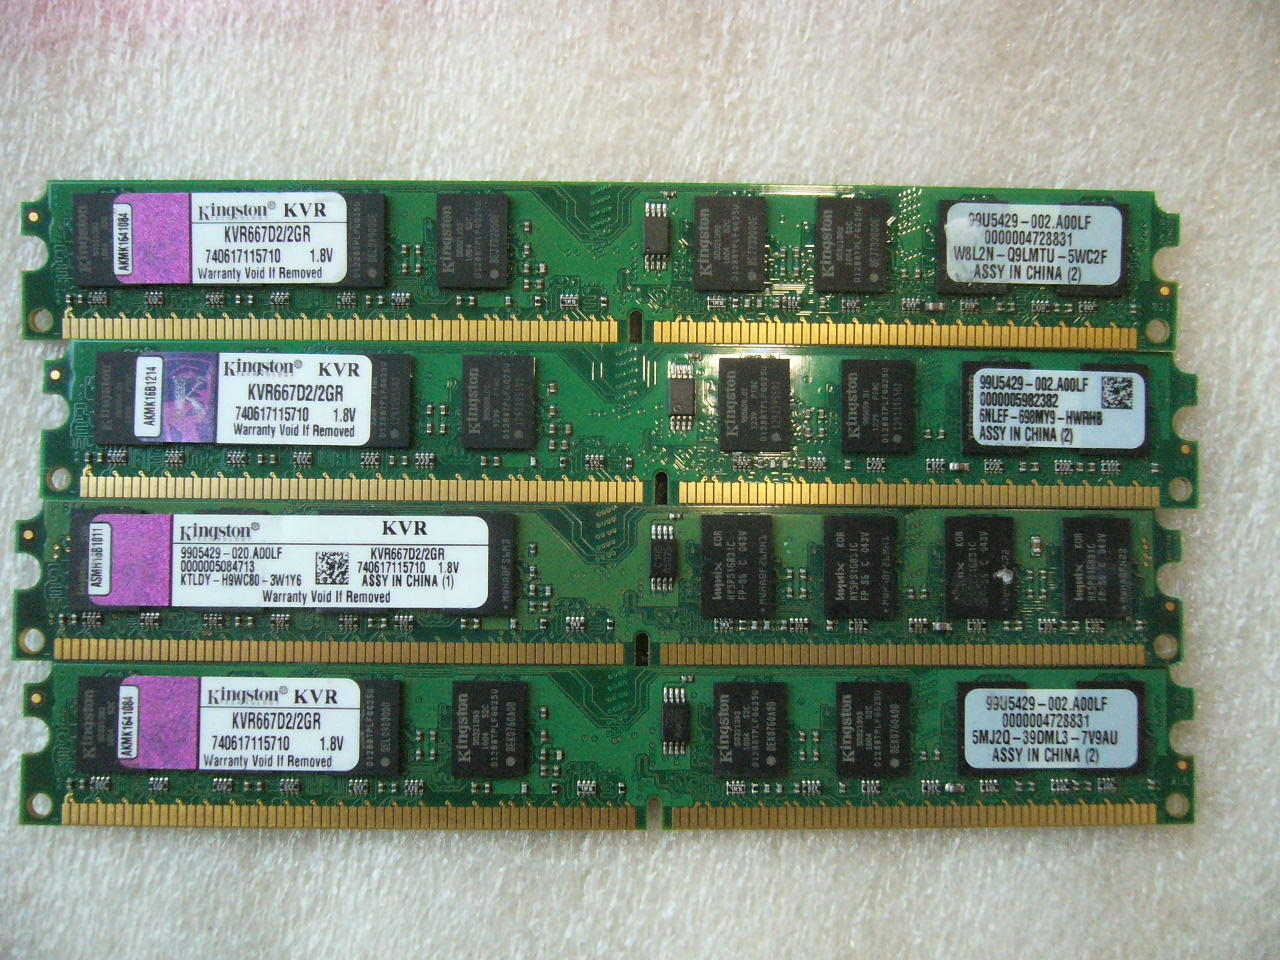 QTY 1x 2GB DDR2 667Mhz non-ECC desktop memory Kingston KVR667D2/2GR